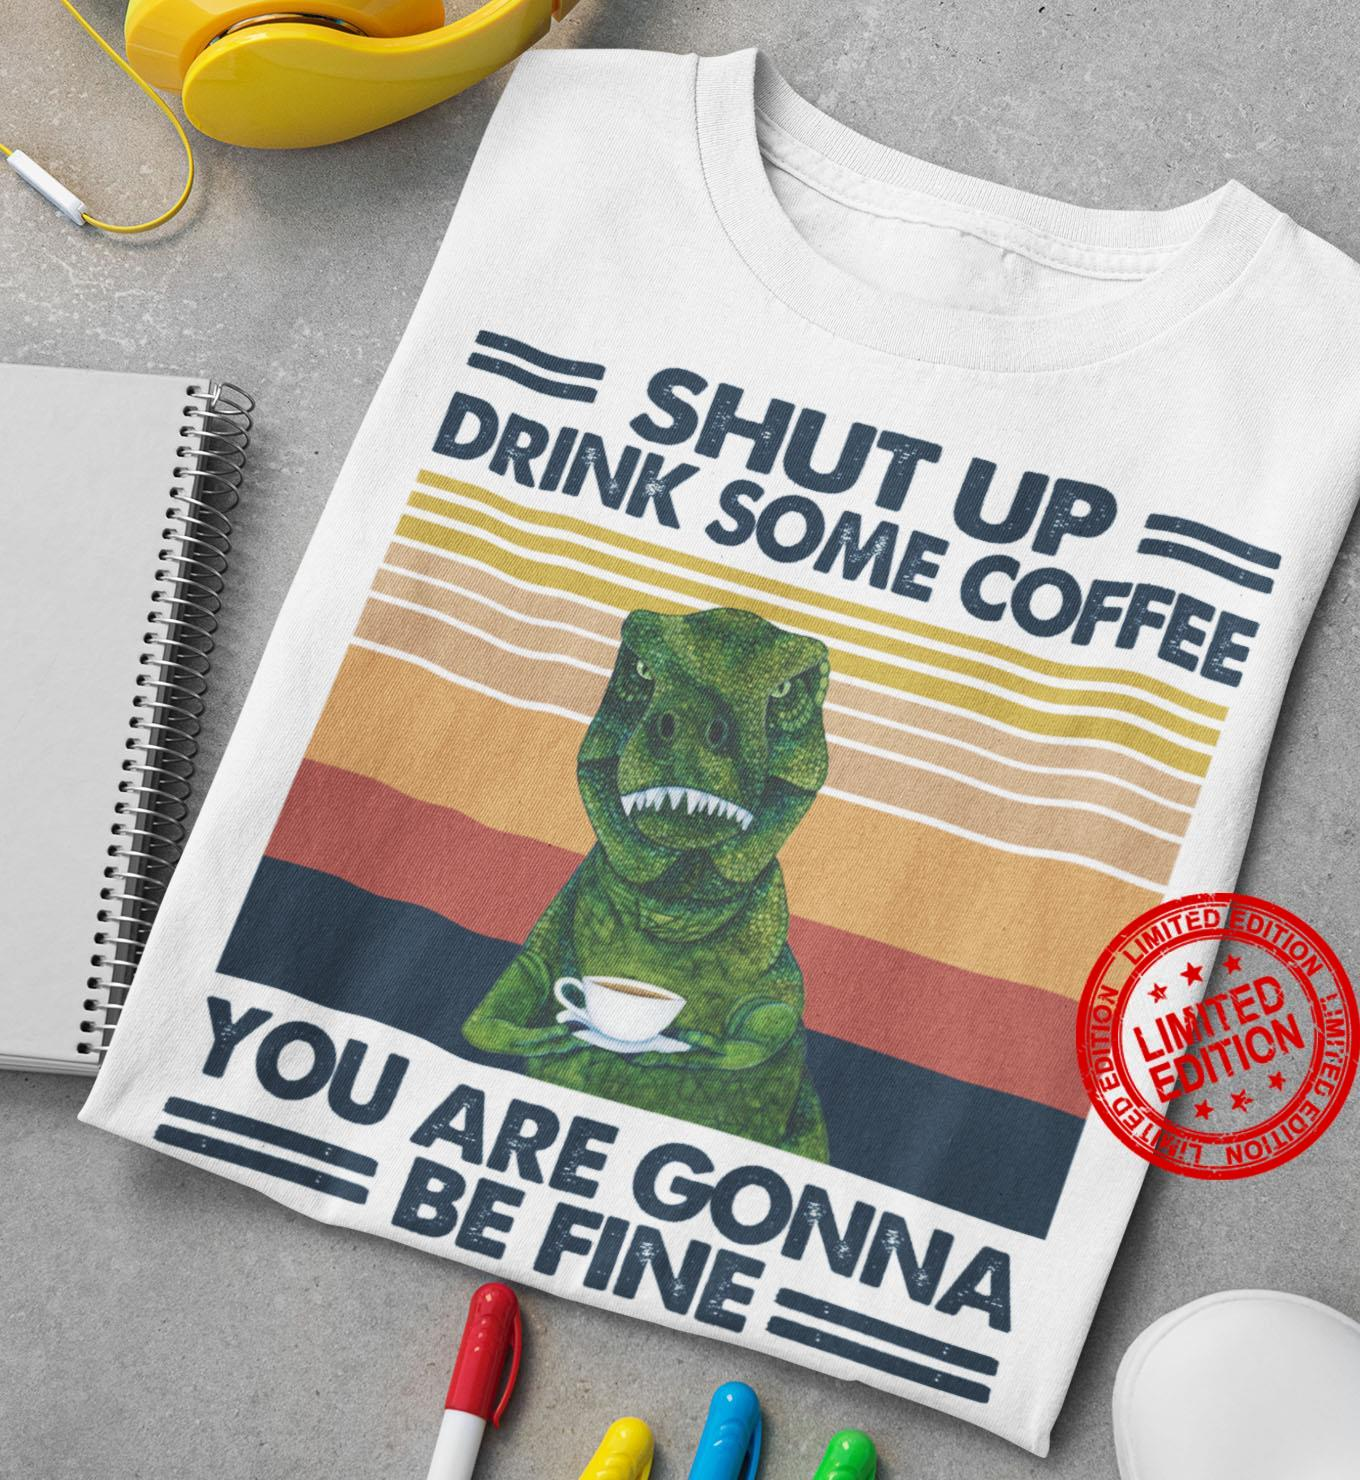 Shut Up Drink Some Coffee You Are Gonna Be Fine Shirt